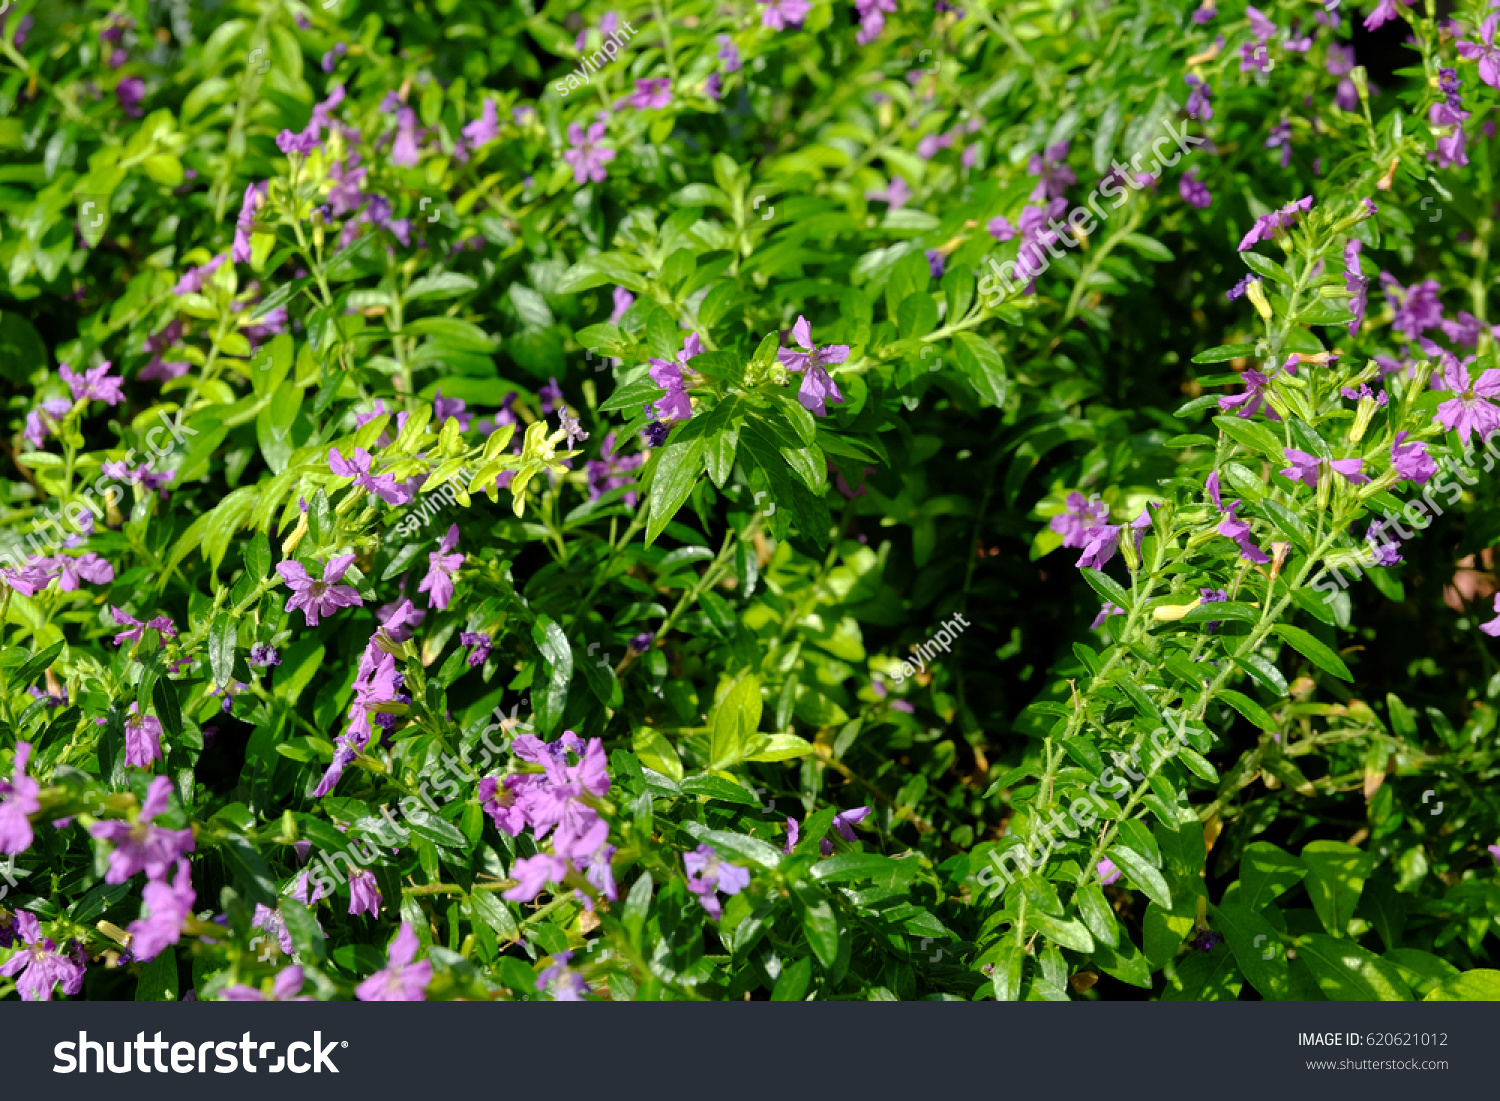 Plant small pink flowers green leaves stock photo edit now plant with small pink flowers and green leaves mightylinksfo